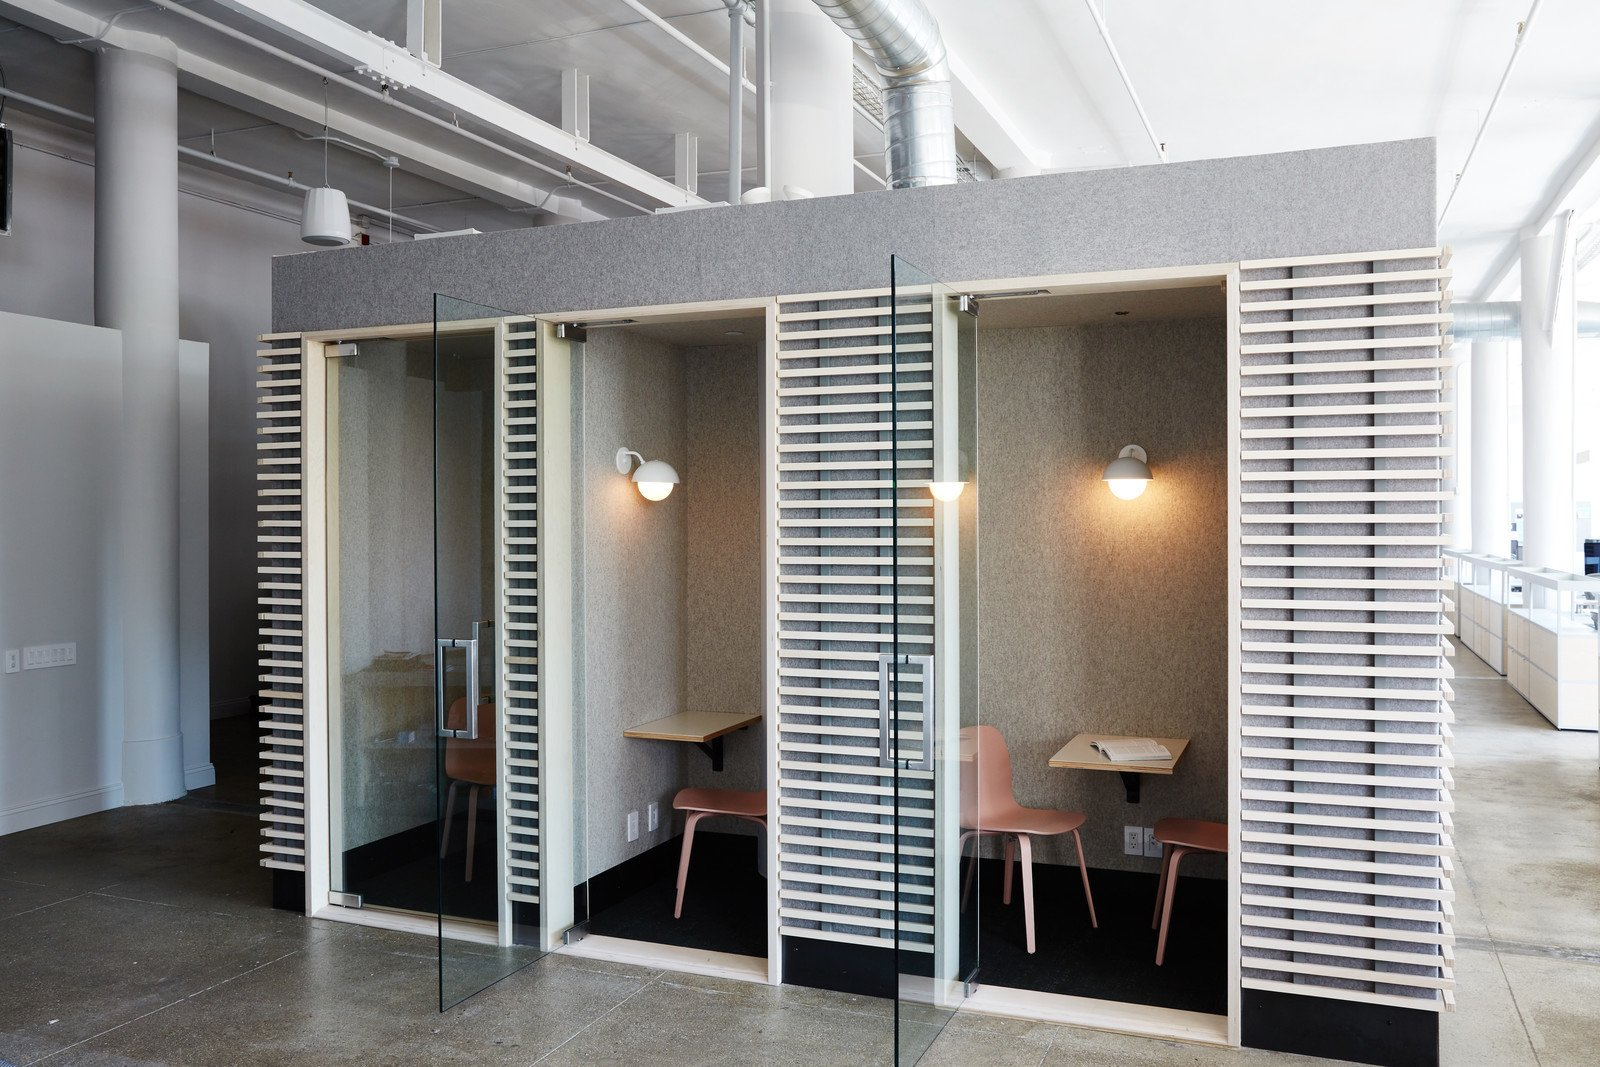 Pink Muuto Visu Chairs invite employees into the phone rooms while Dome Sconces by Allied Maker provide gentle light. The felt-wrapped rooms with bleached plywood slats are one of Murphy's favorite features.  Photo 13 of 15 in 14 Creative Ways to Design With Felt